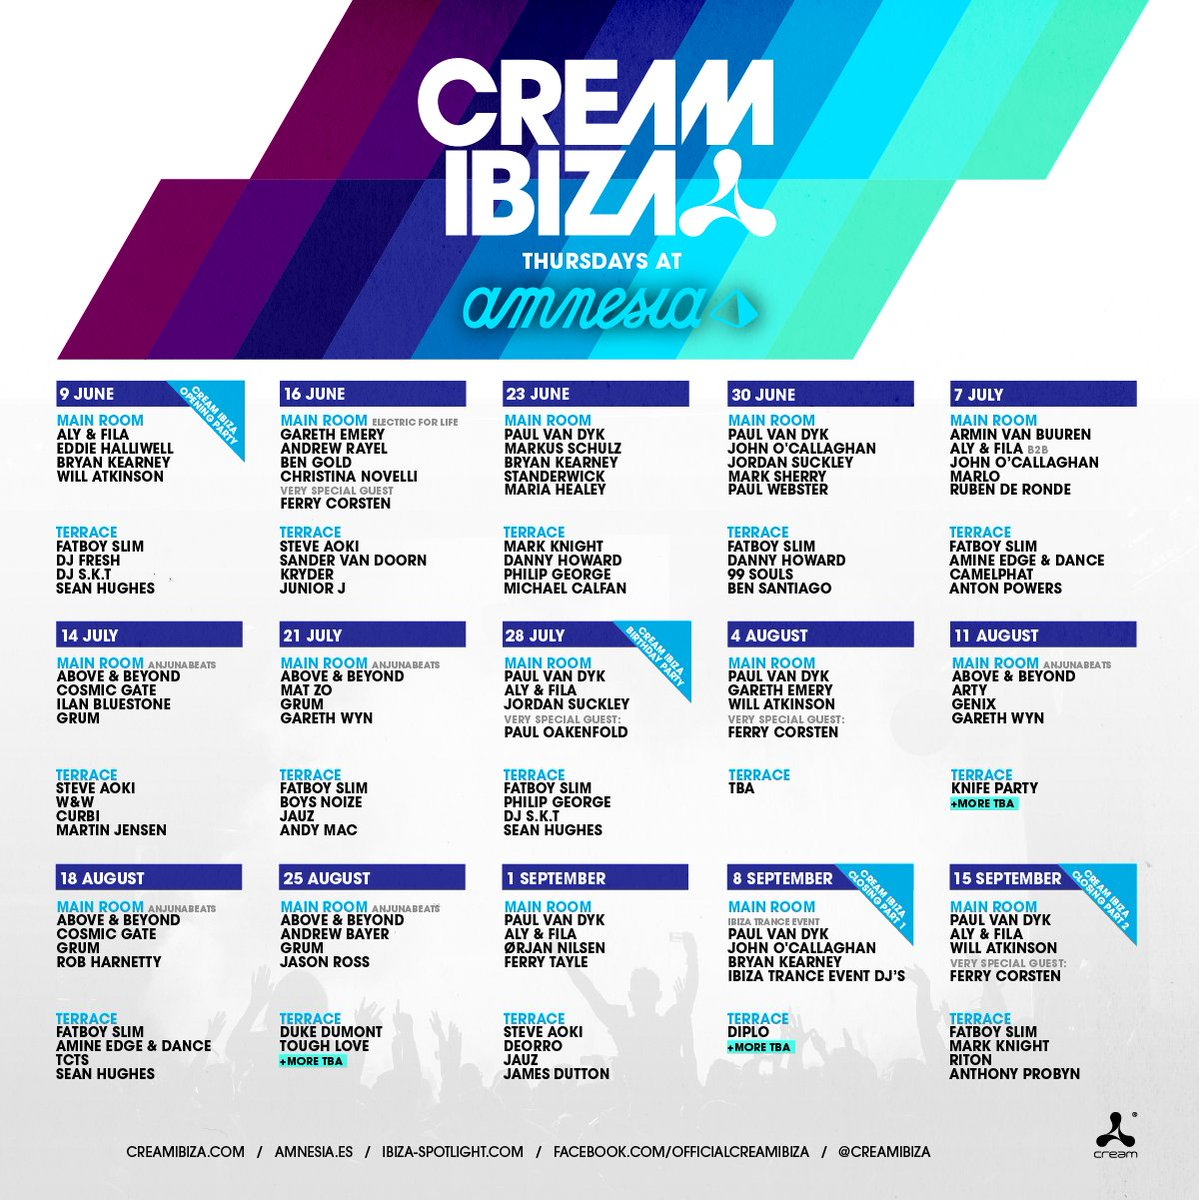 #CreamIbiza2016 https://t.co/RdHieQ00H1